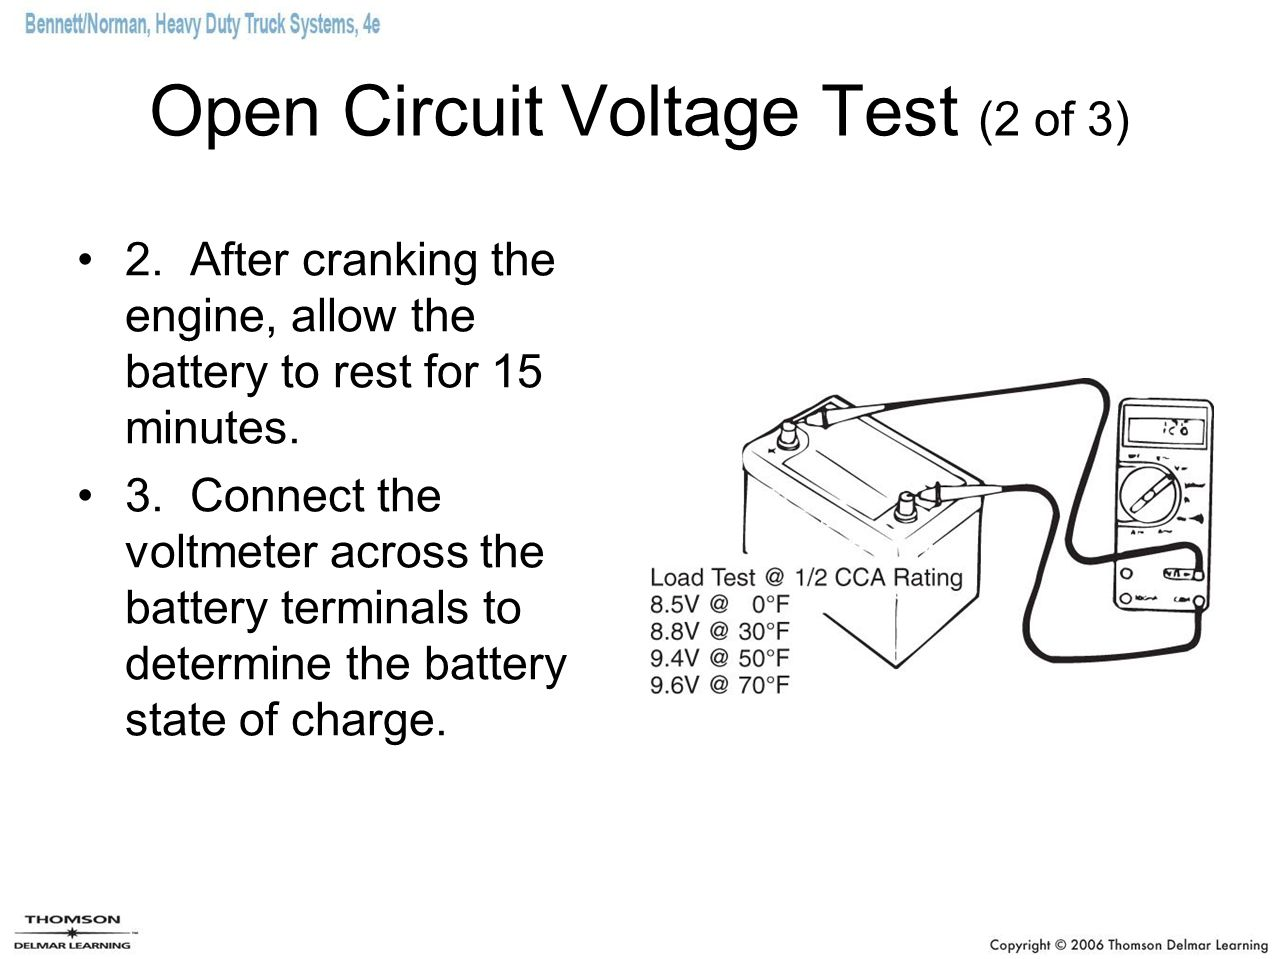 Open Circuit Voltage Test (2 of 3)